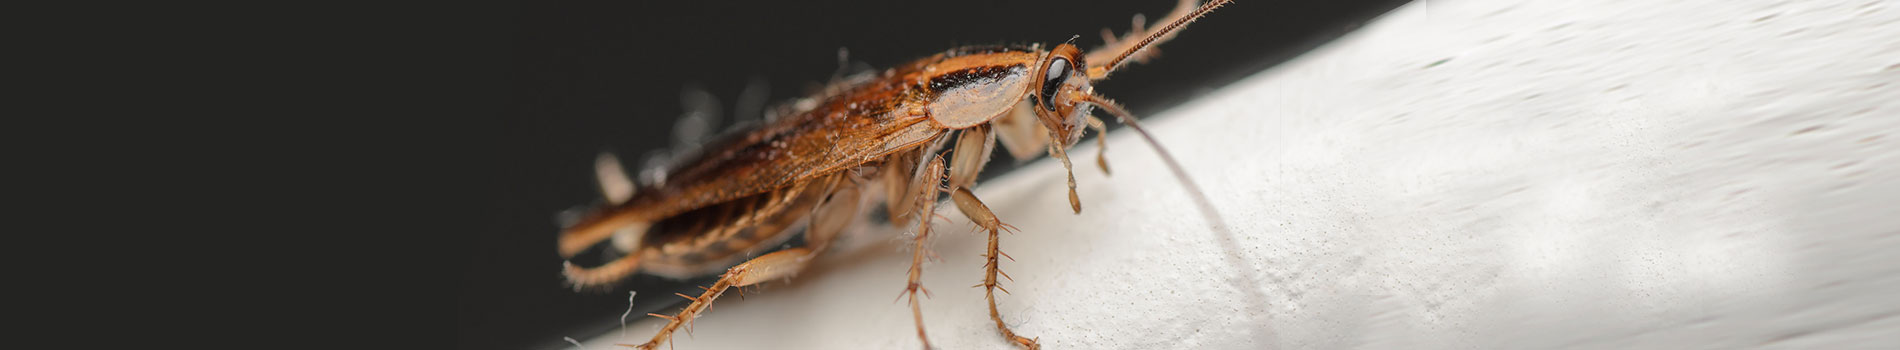 Image of a German Cockroach. A common pest control species.